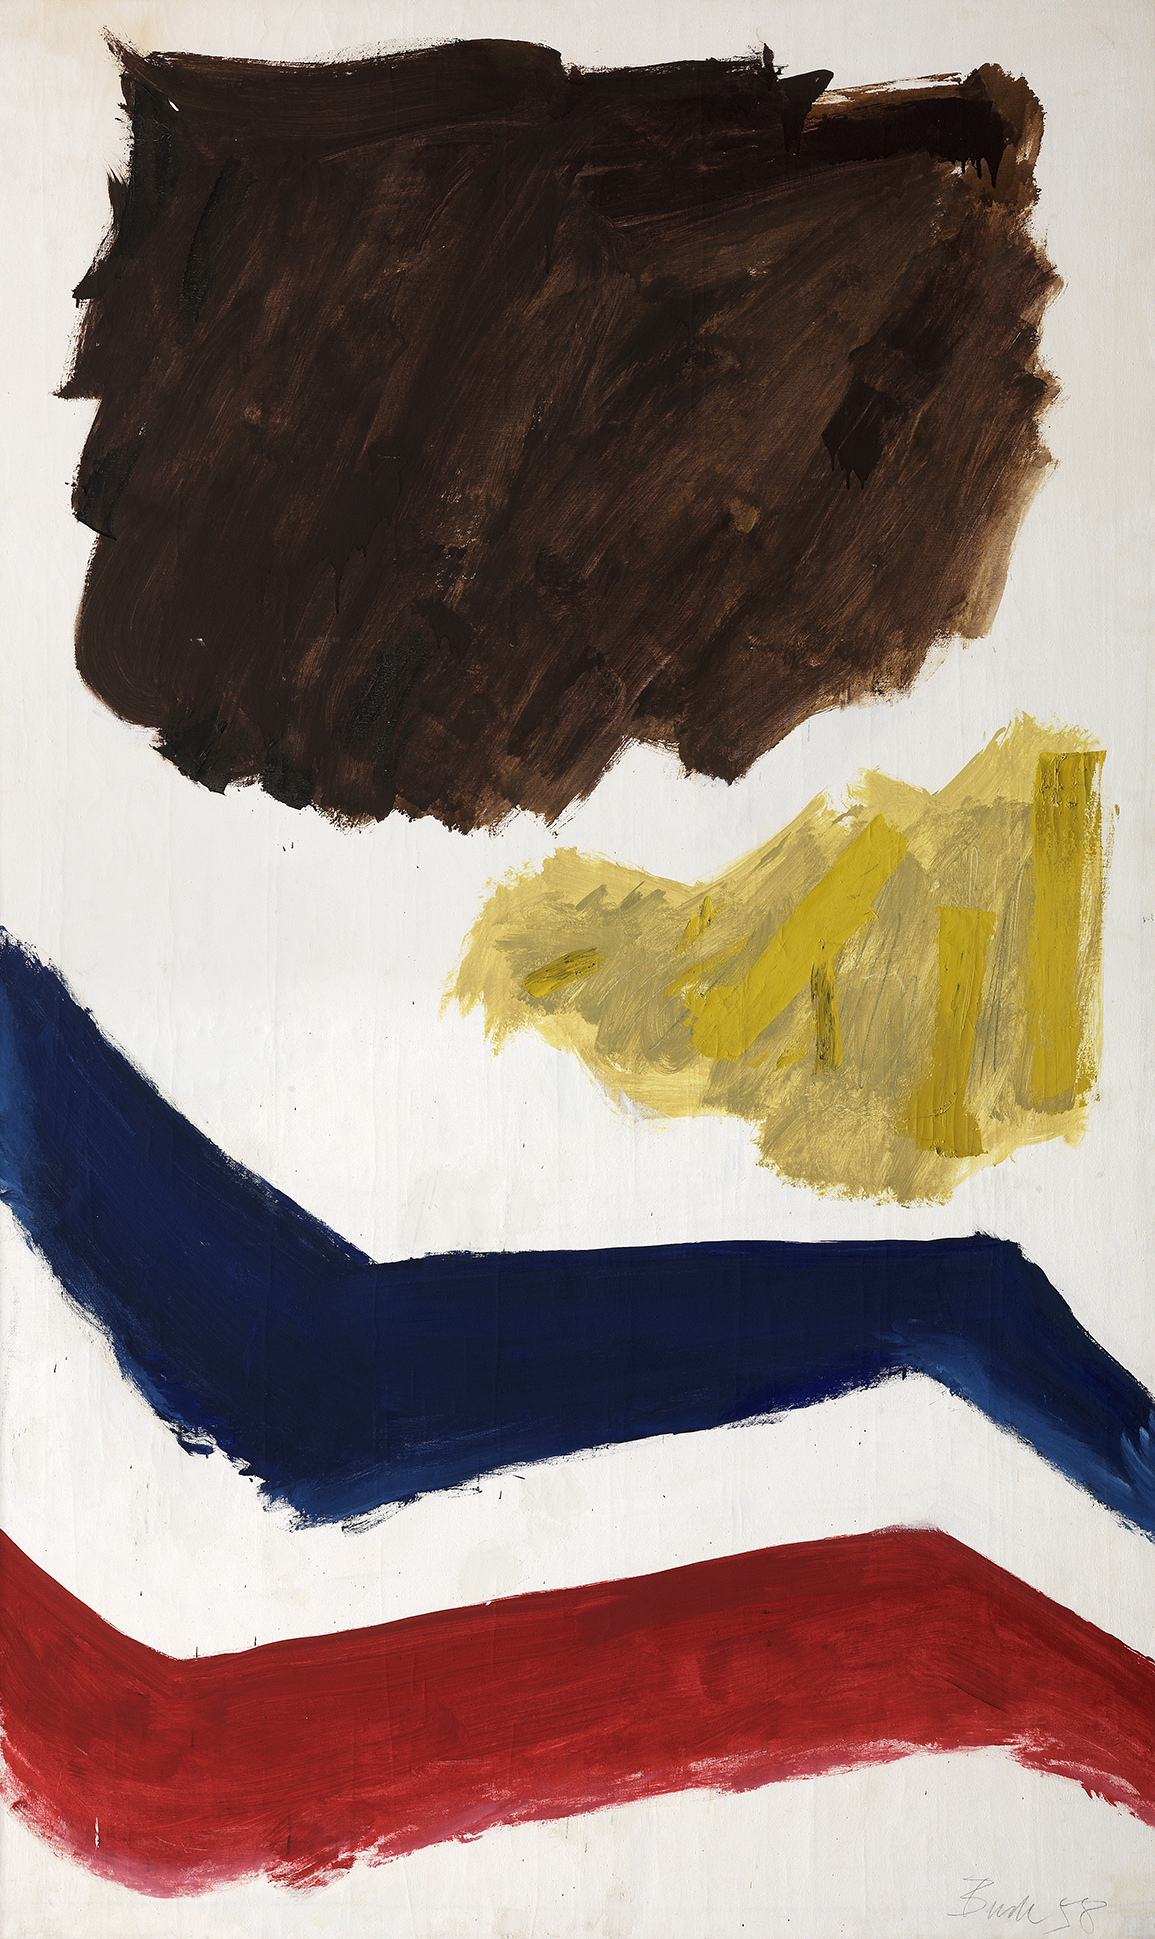 This painting presents four forms on a white background. A large brown mass and a smaller yellow one occupy the upper half of the canvas, while two bands, one blue and one red, zigzag across the lower half.